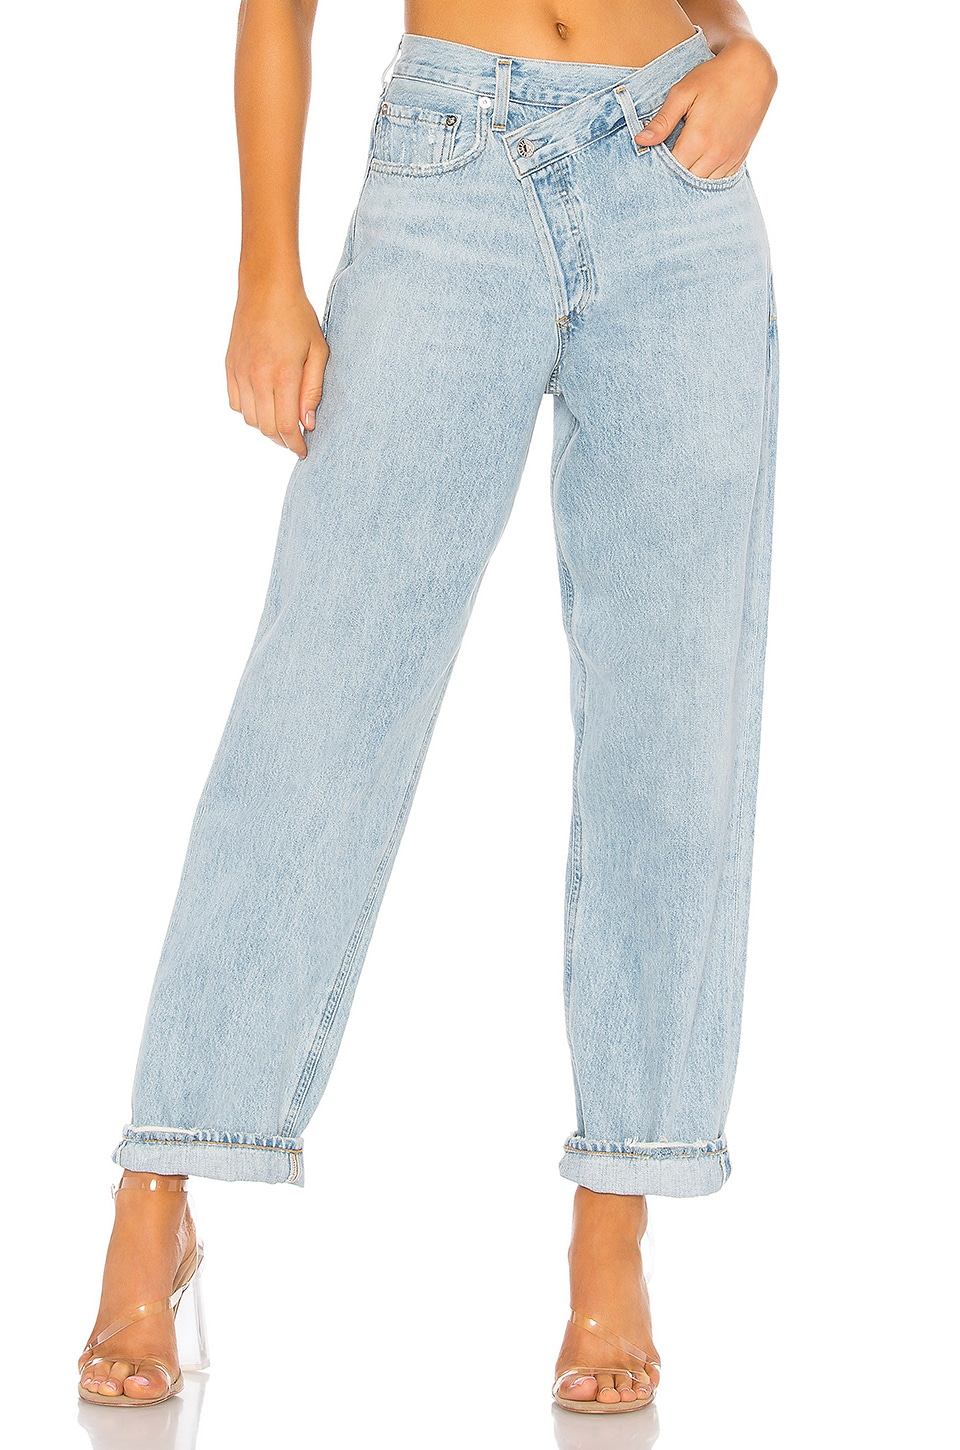 Criss Cross Upsized Jean             AGOLDE                                                                                                       CA$ 264.00 11